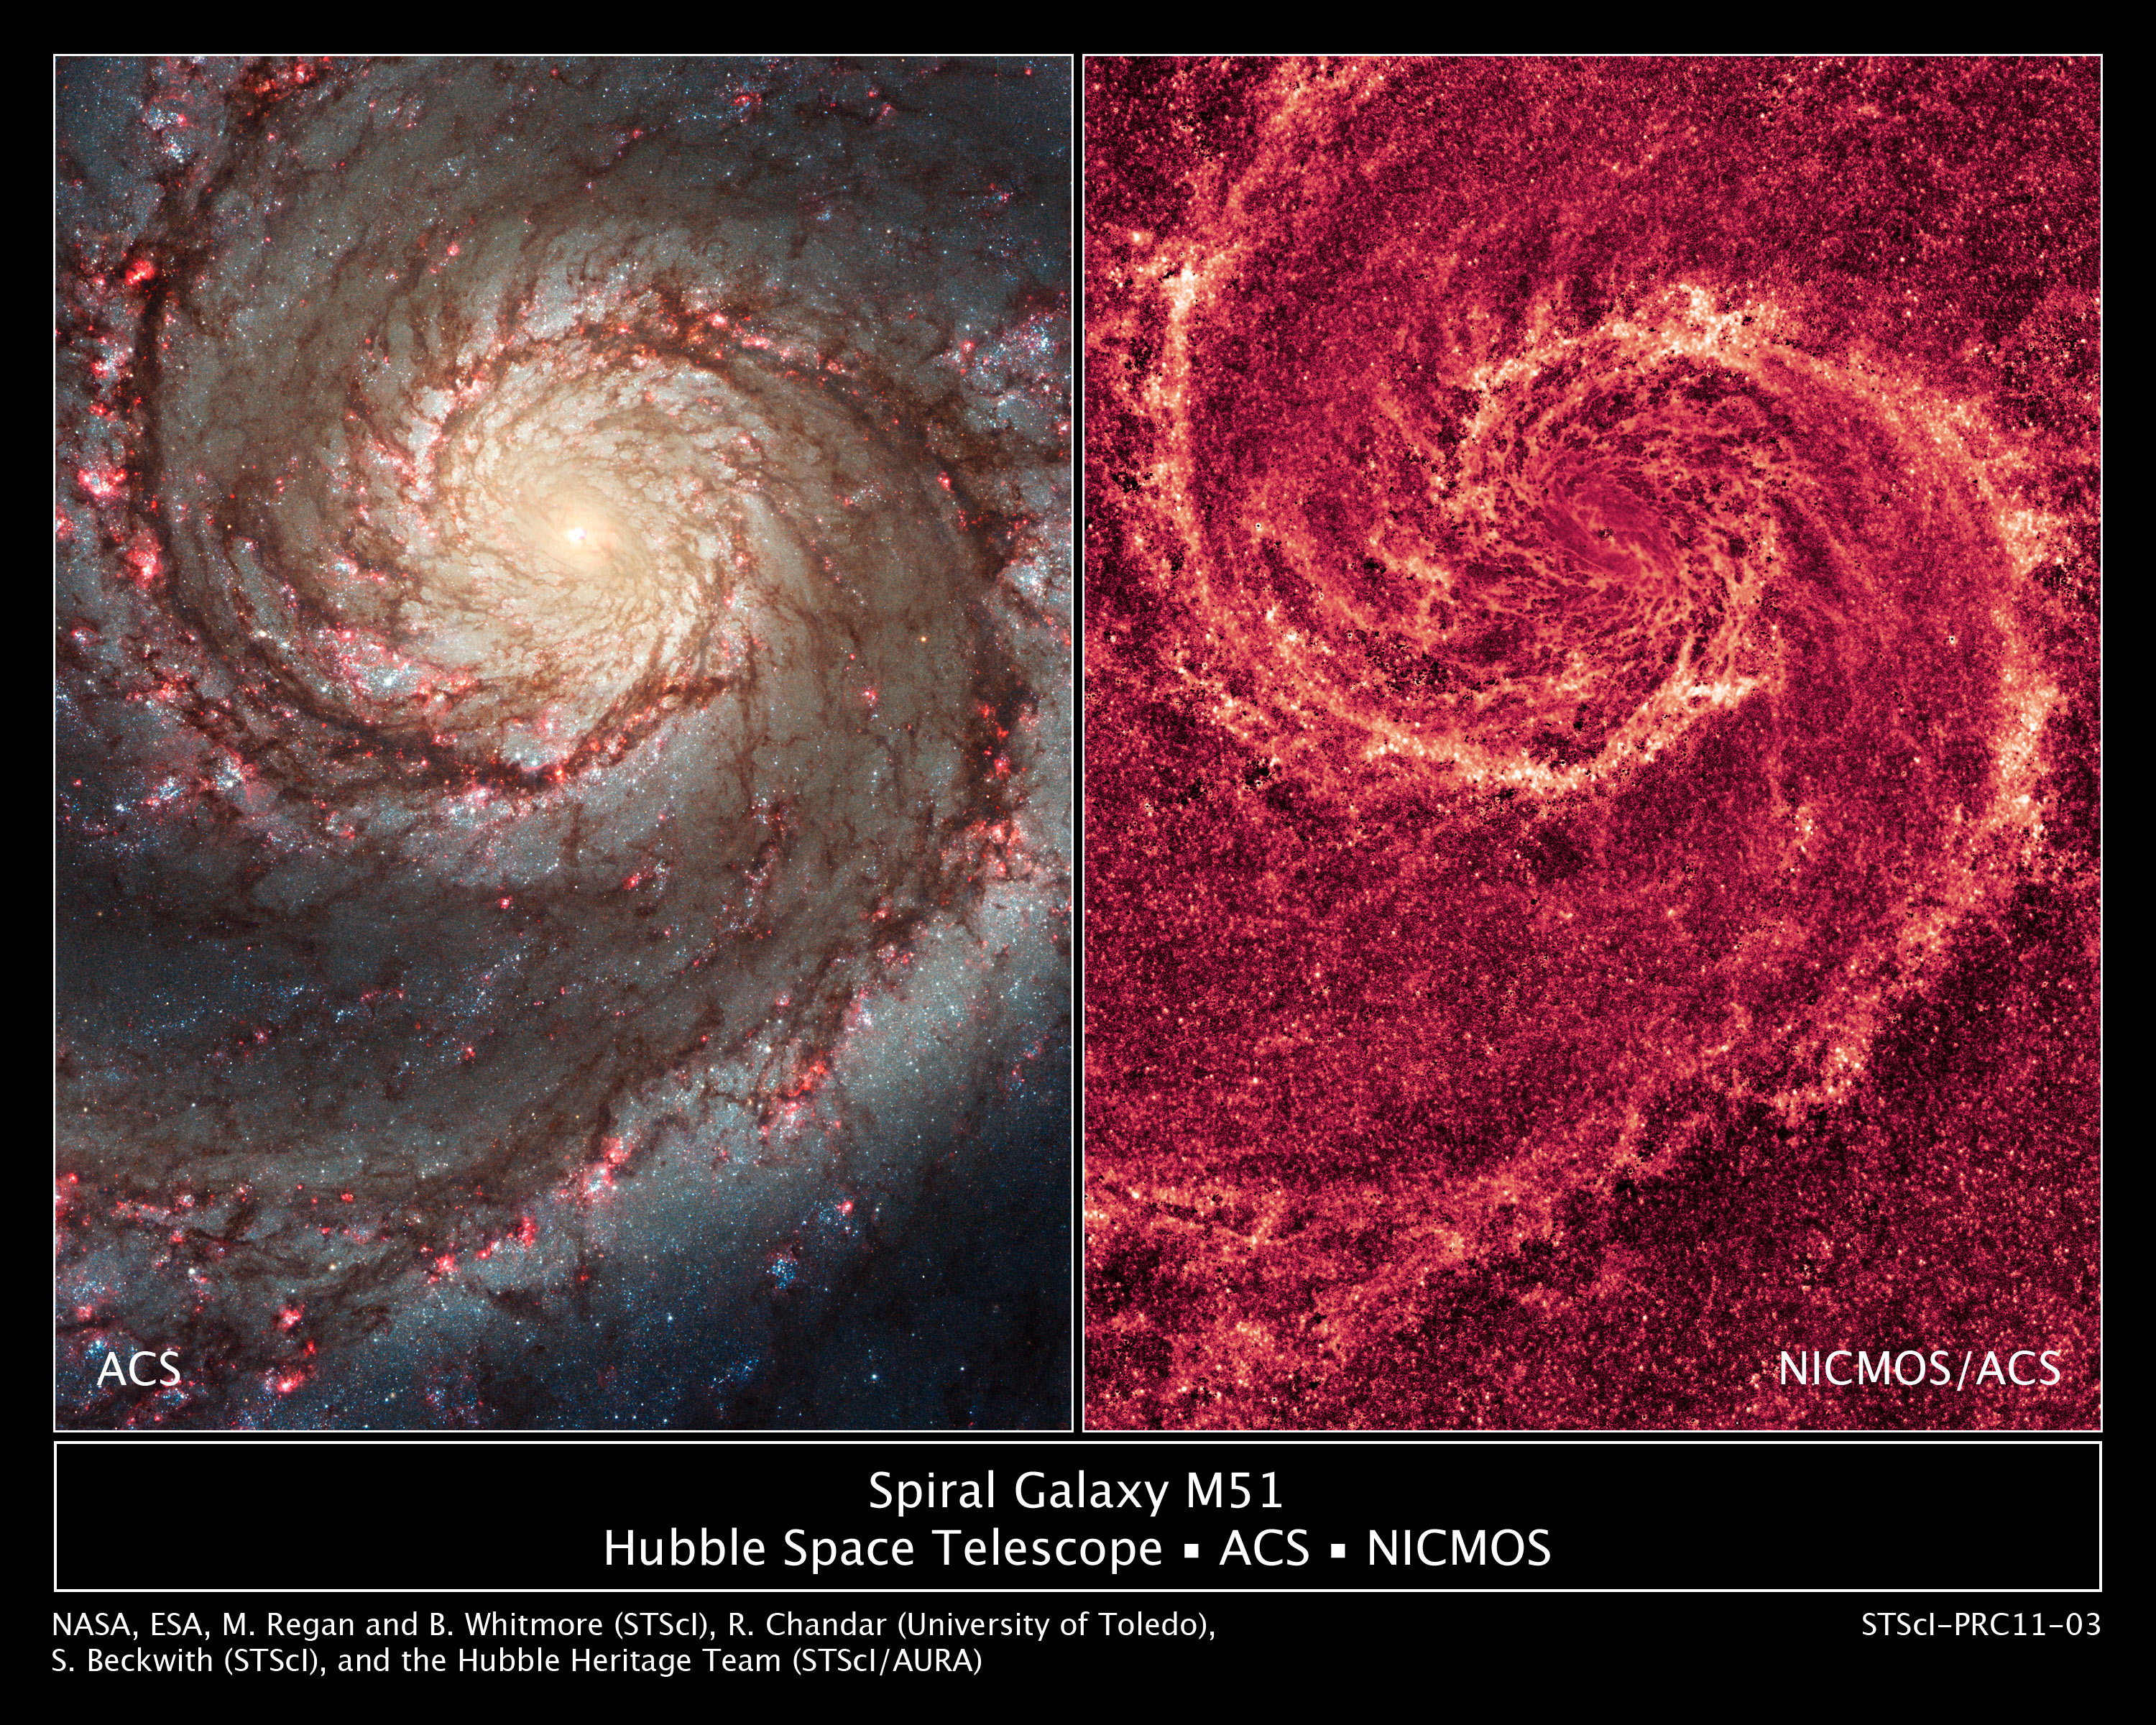 NASA - The Two-faced Whirlpool Galaxy